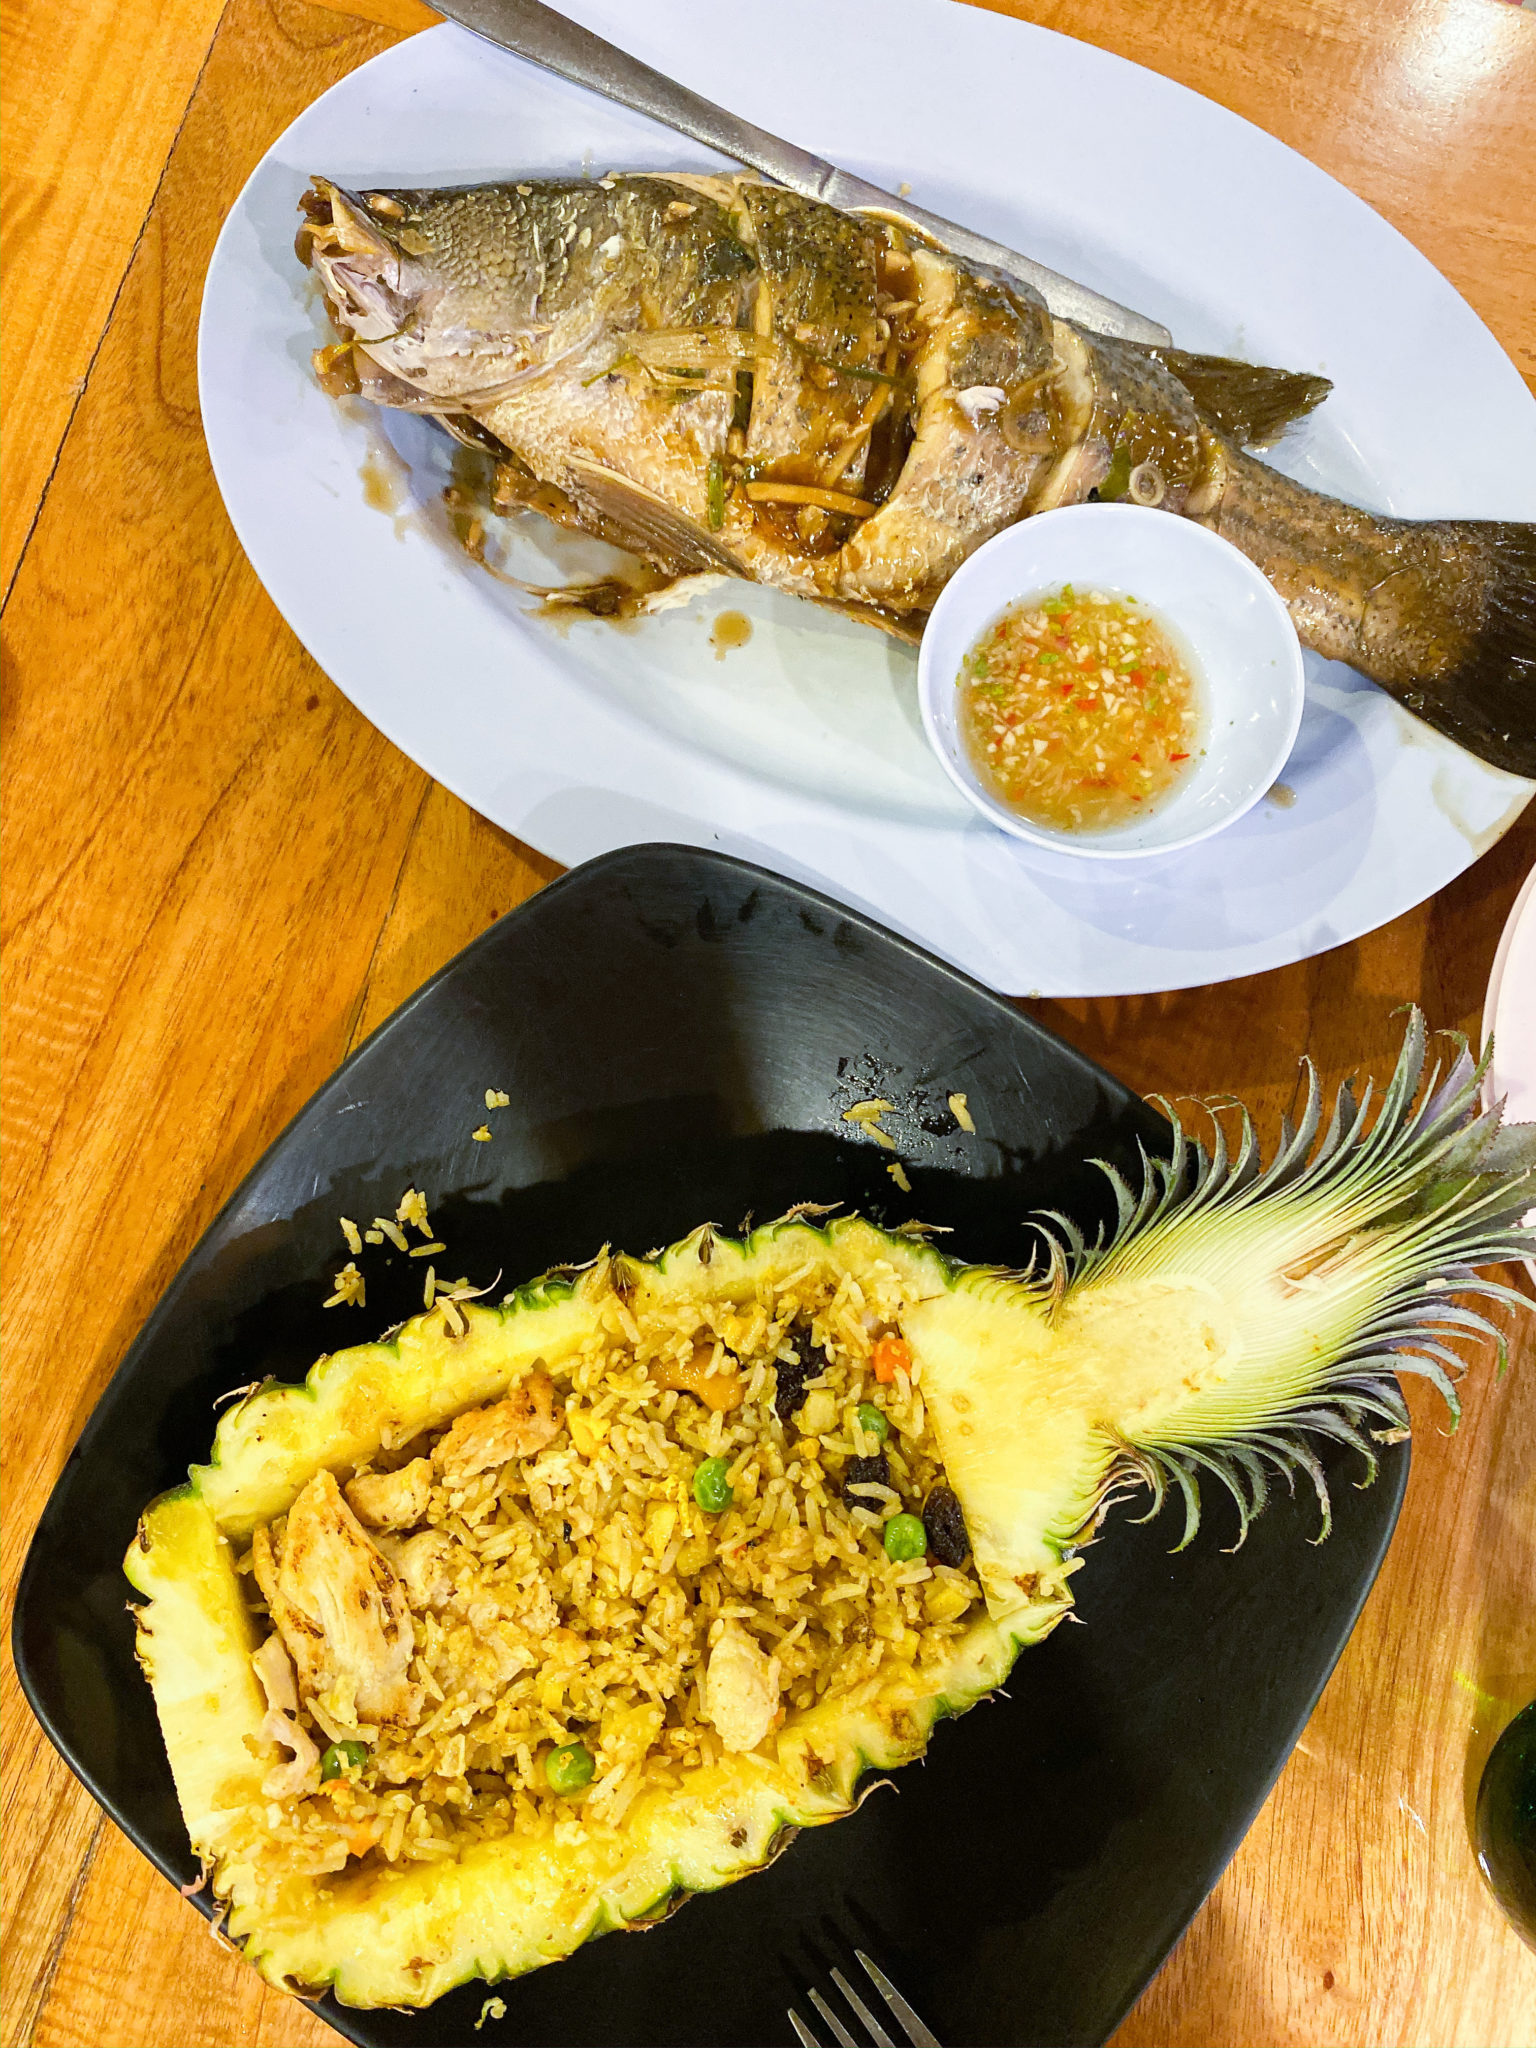 Where to eat in Railay Beach, Krabi   Everything you need to know to spend a great holiday in Railay   Travel Blogger tips about Thailand by Michaella from Quite a Looker